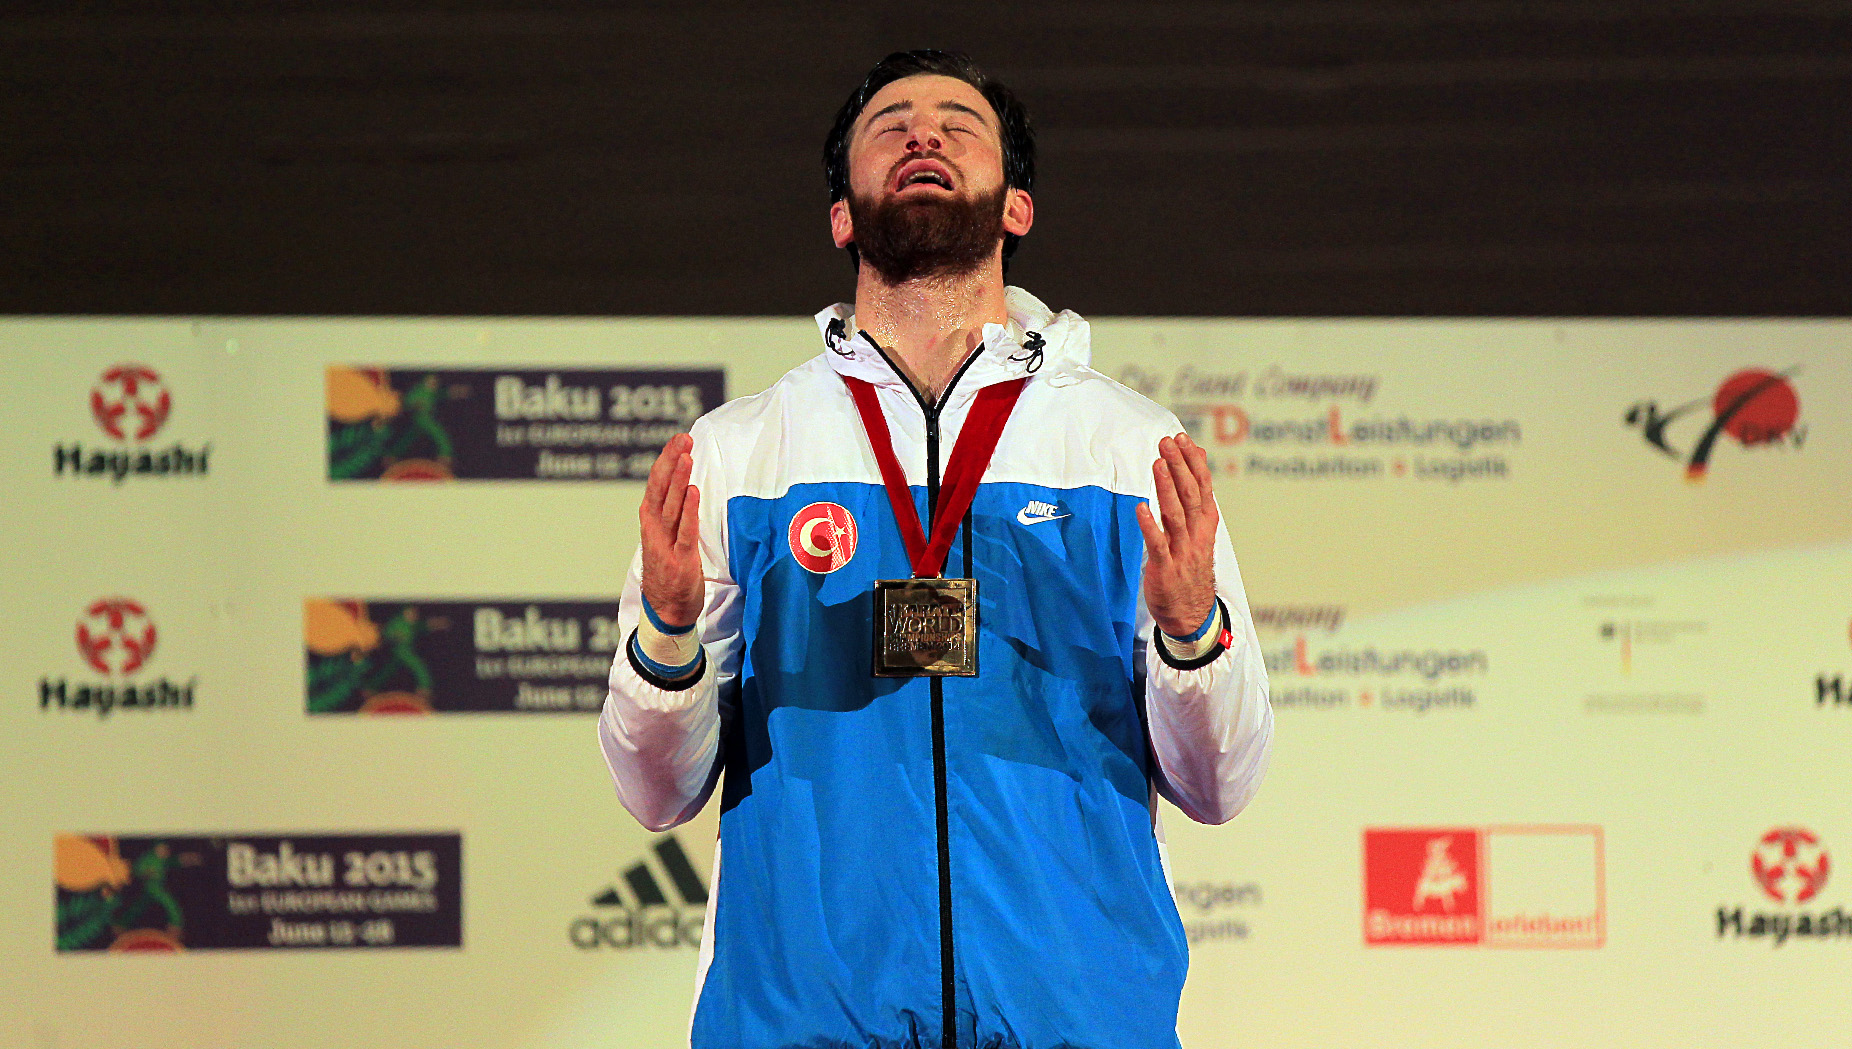 ENES ERKAN TWO-TIMES WORLD CHAMPION